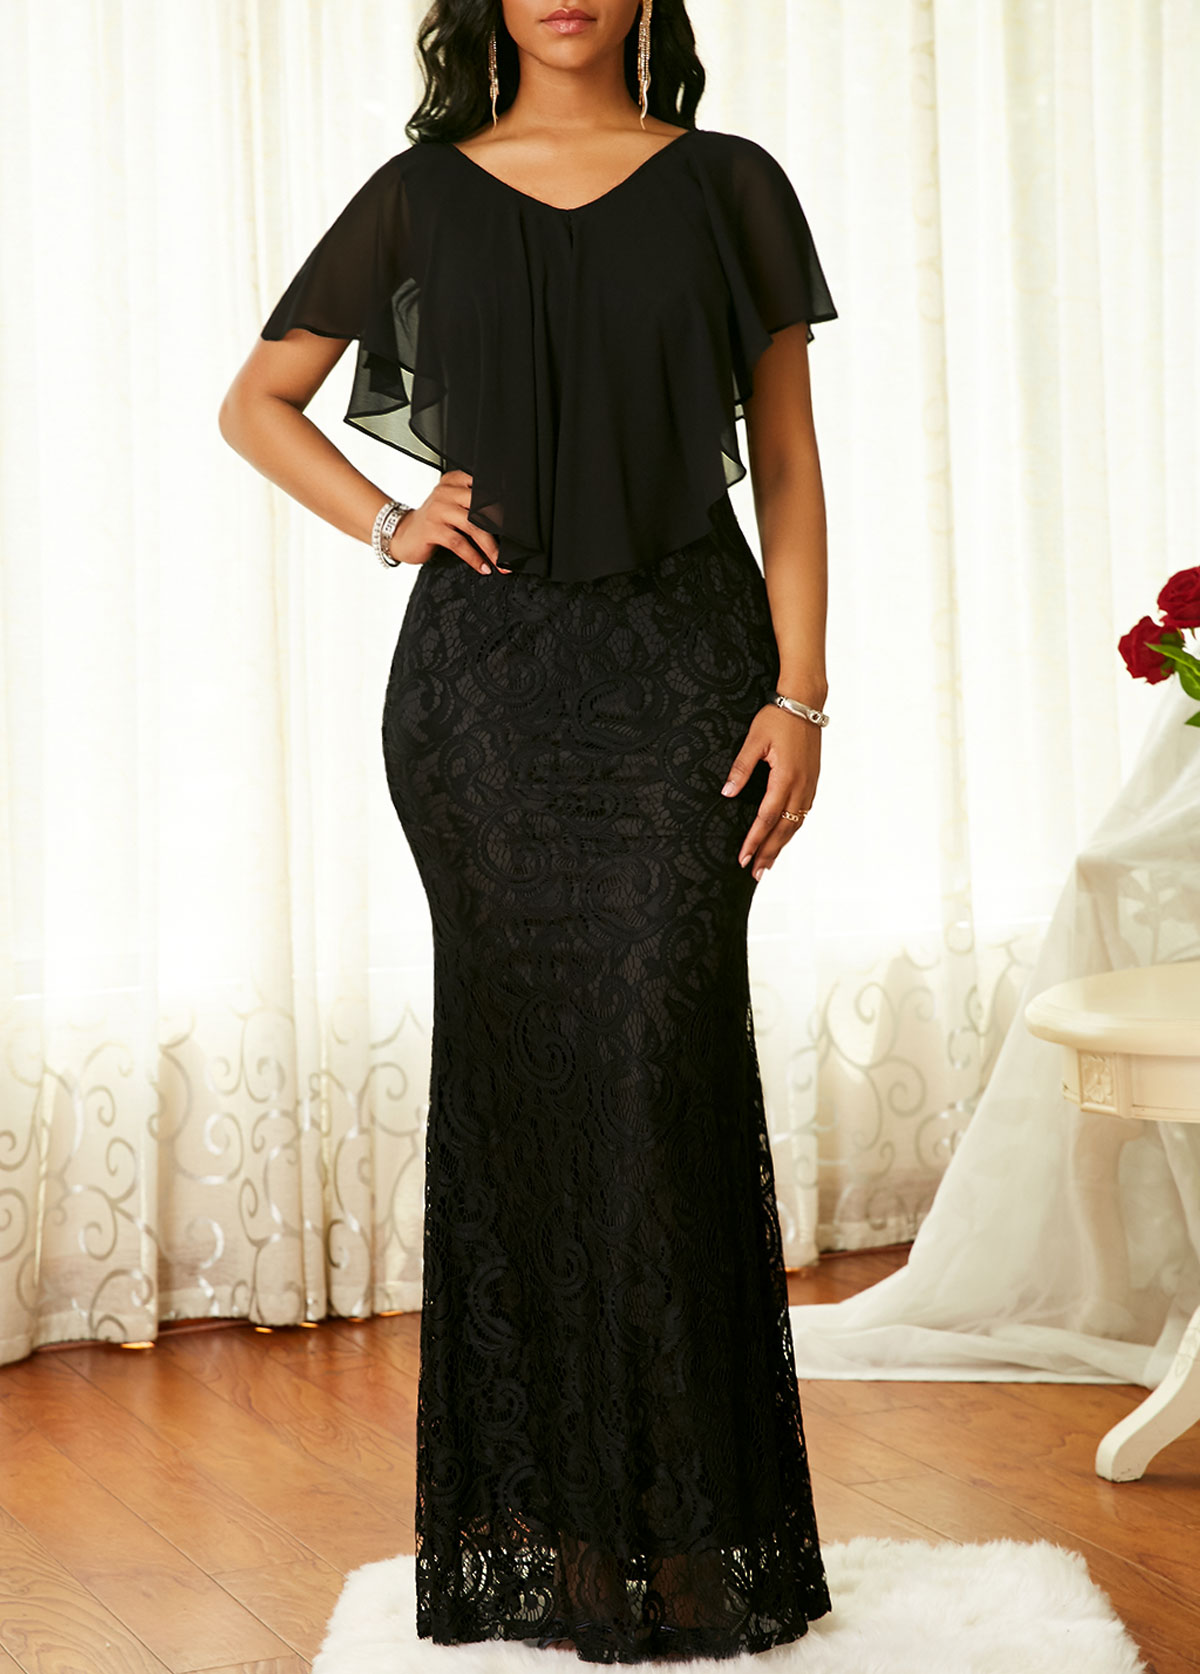 Cape Shoulder Black V Neck Lace Dress